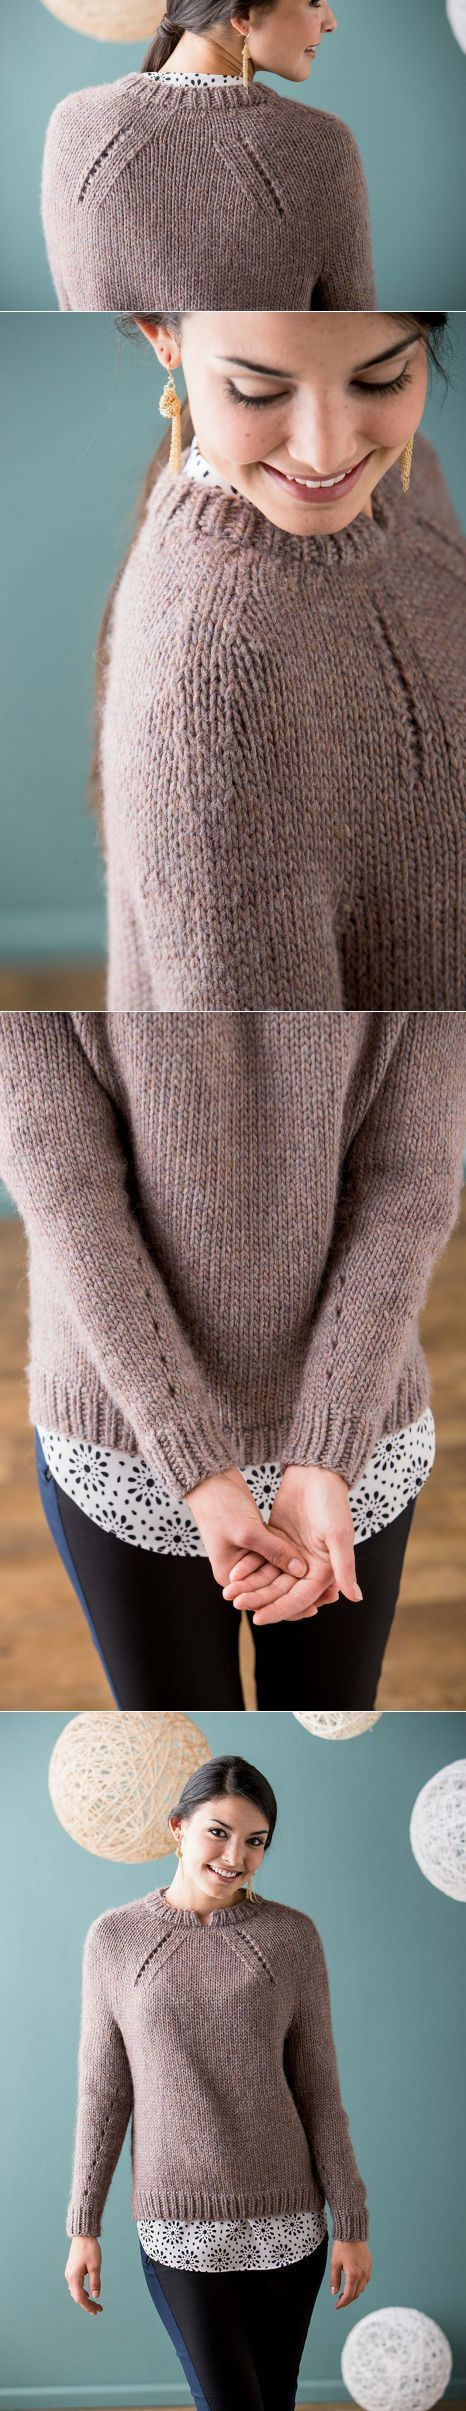 Пуловер Shifted Eyelet Yoke, Knit Purl, осень-зима (fall/winter) 2014